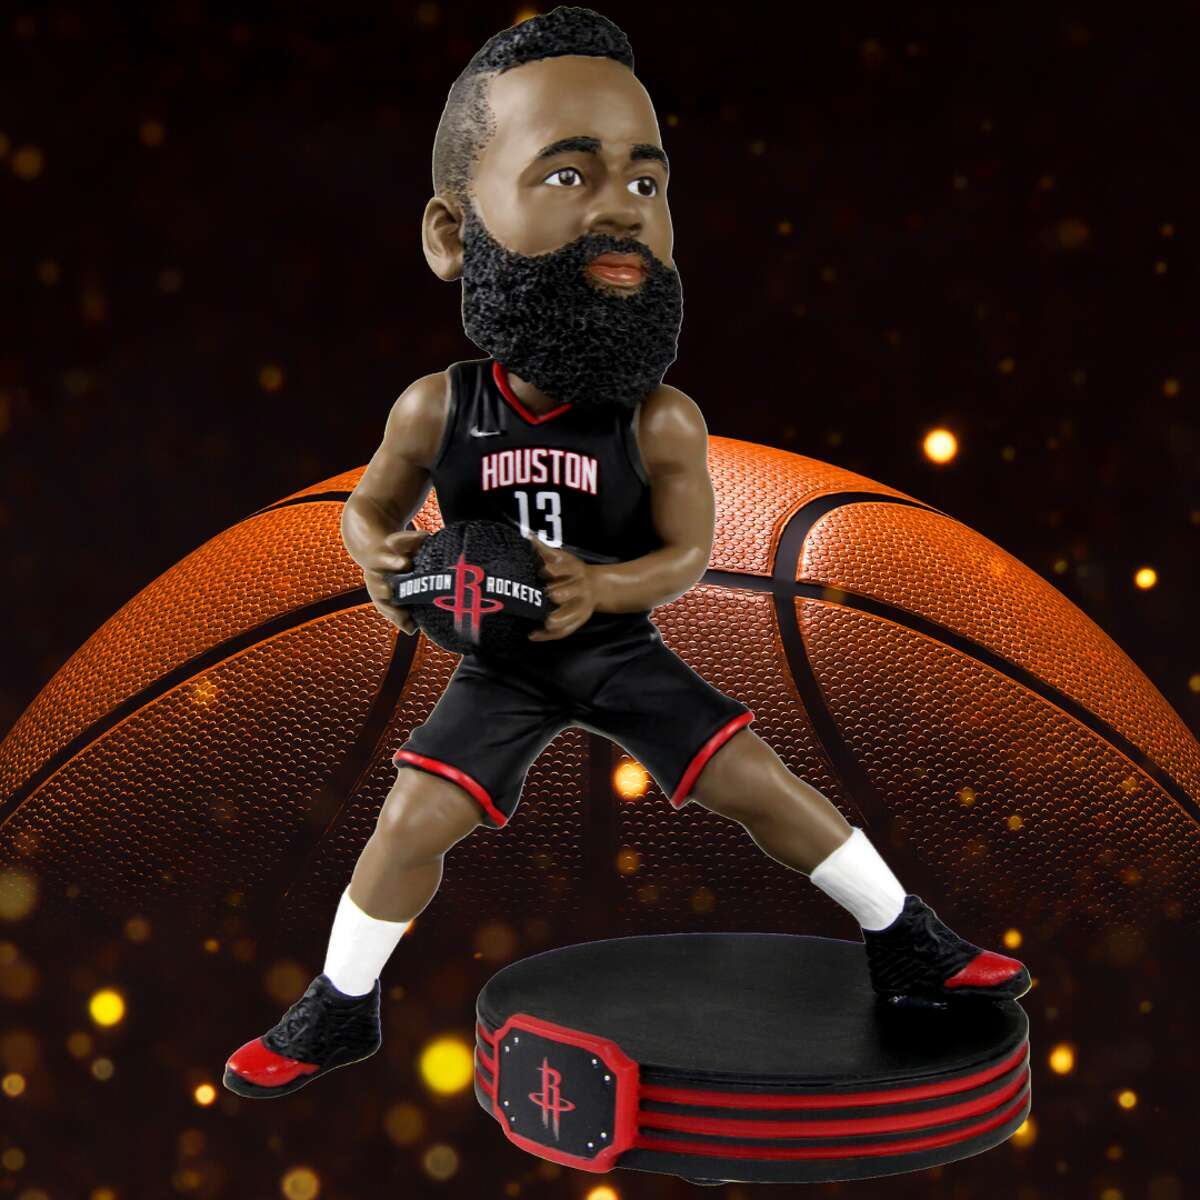 A James Harden bobblehead. For any Rockets fan missing their team (and sports in general), this limited edition James Harden bobblehead is only available through the National Bobblehead Hall of Fame website.